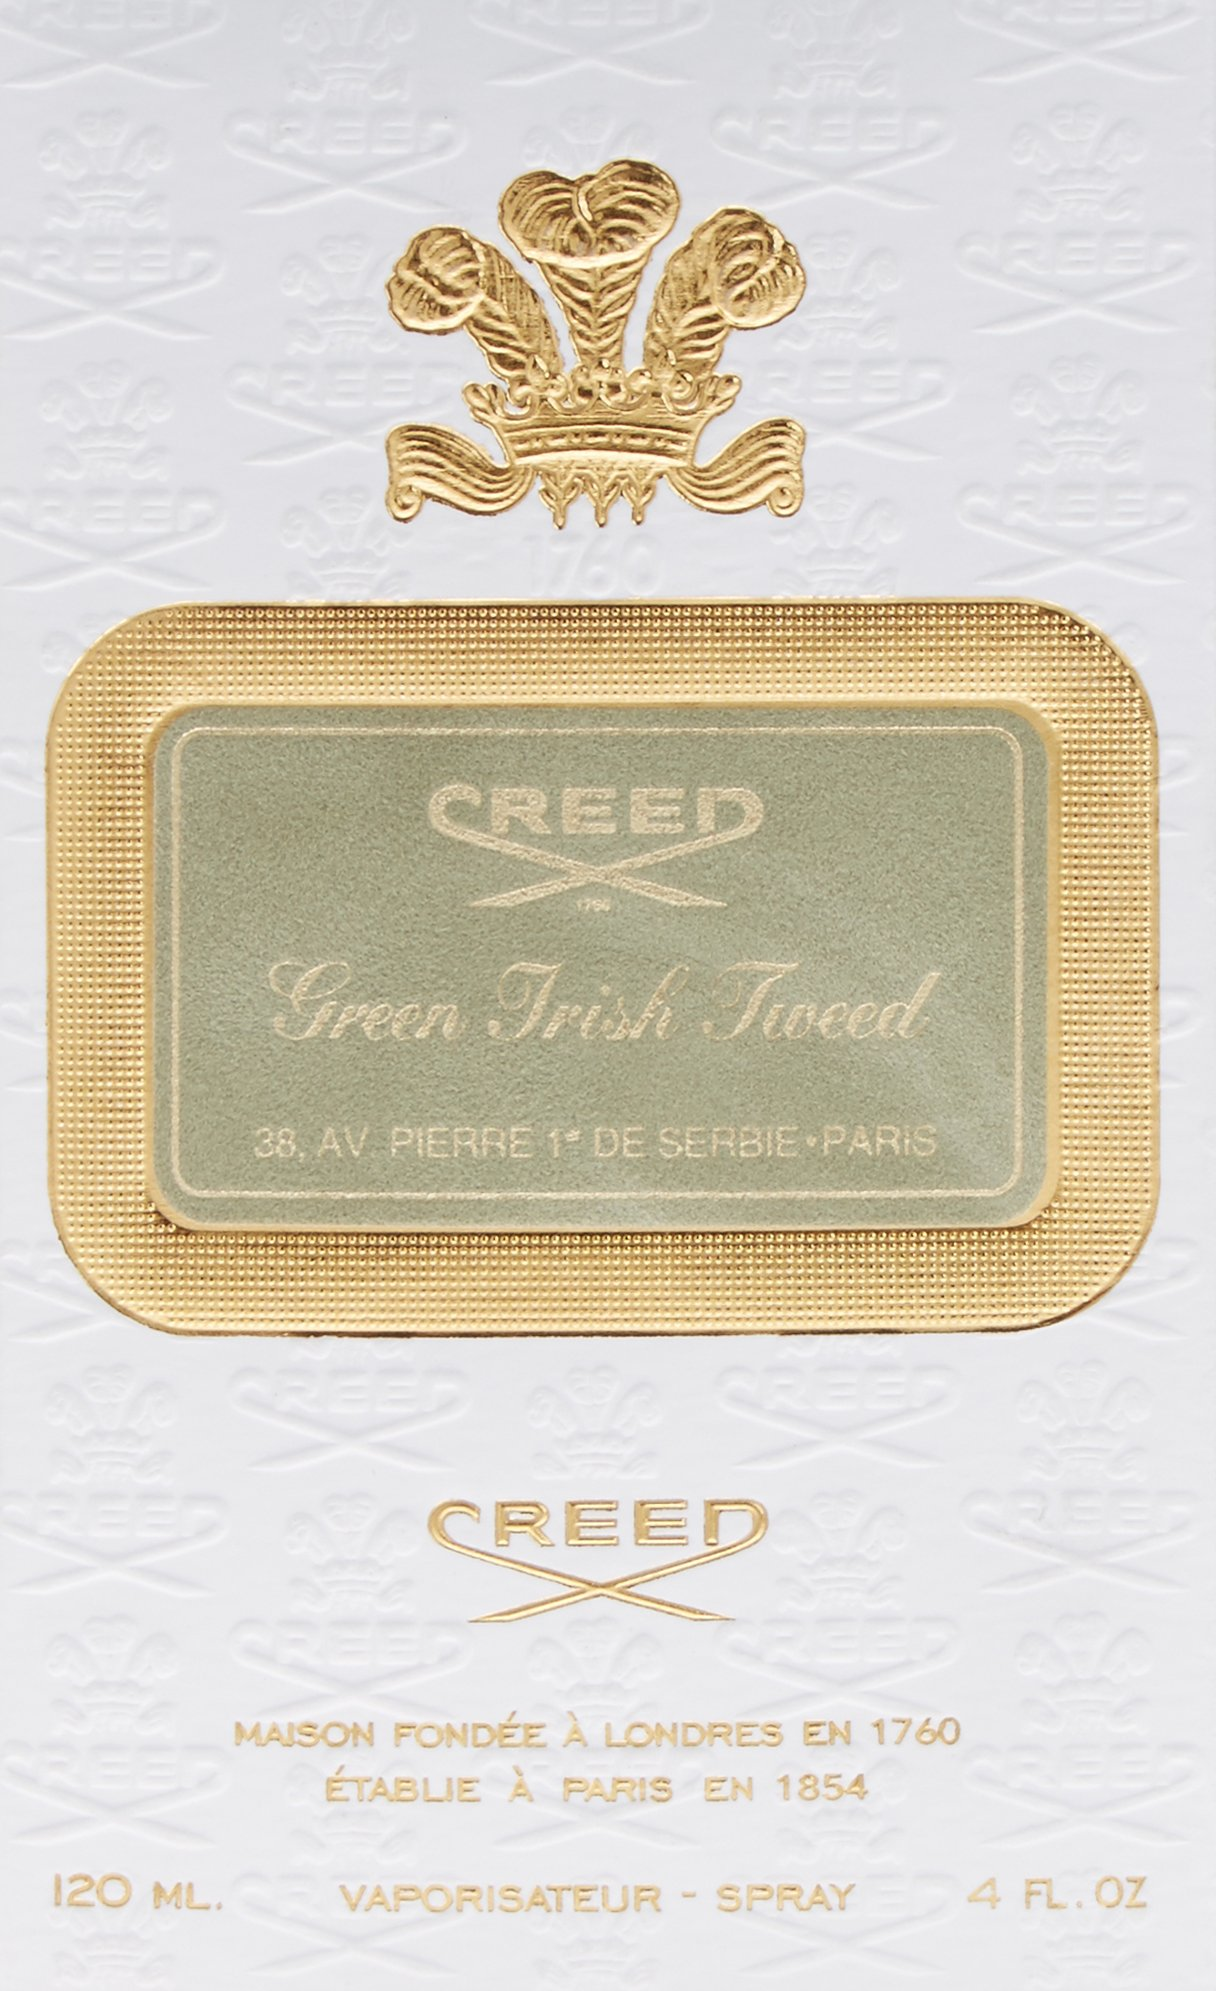 Creed Green Irish Tweed By Creed EDP Spray for Men, 4-Fluid Ounce by Creed (Image #2)